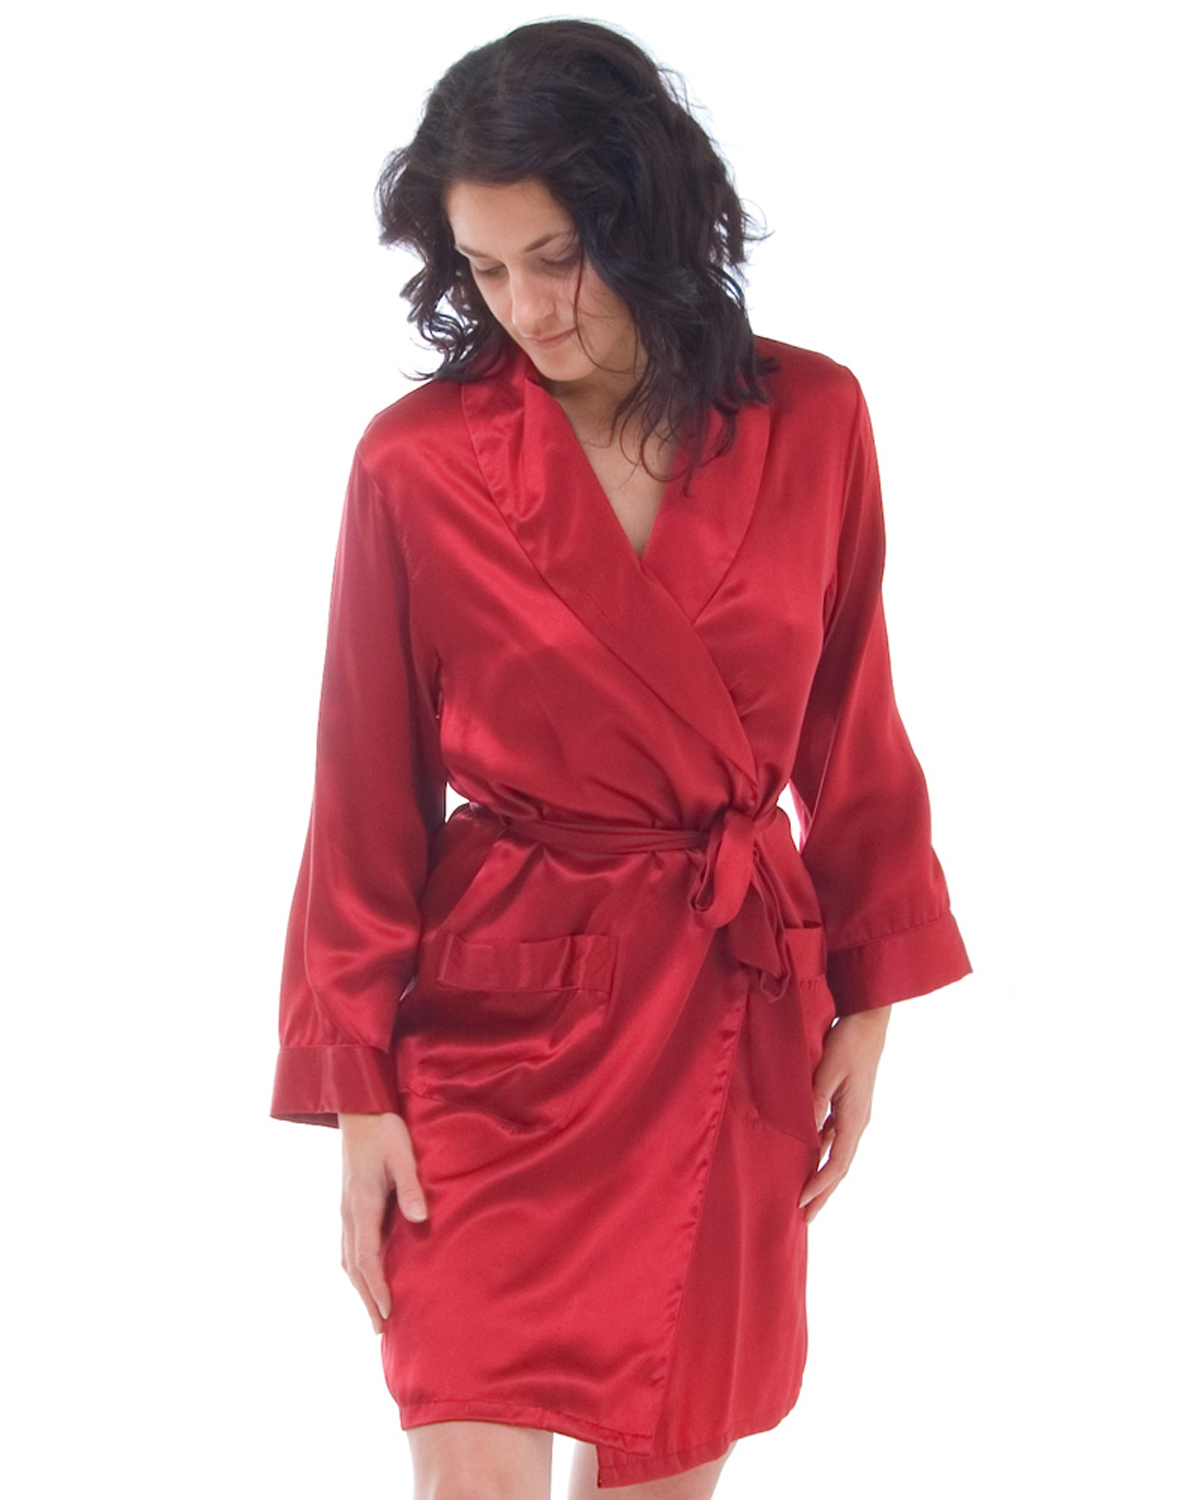 92083d6556 Short Silk Dressing Gown - Clothing and Accessories - Clothing ...